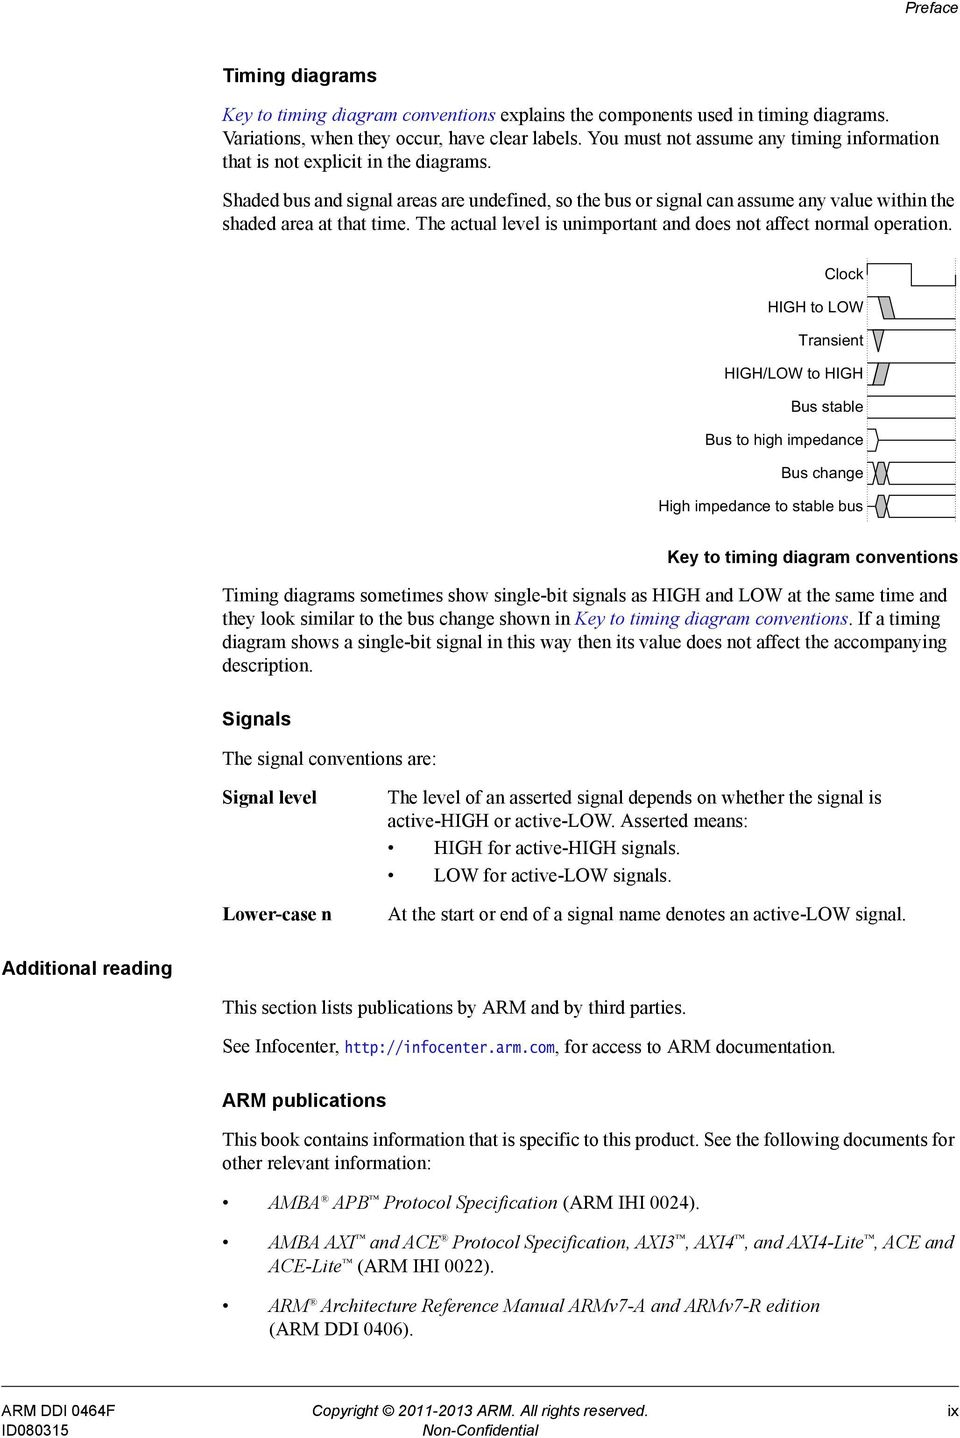 cortex a7 mpcore technical reference manual revision r0p5